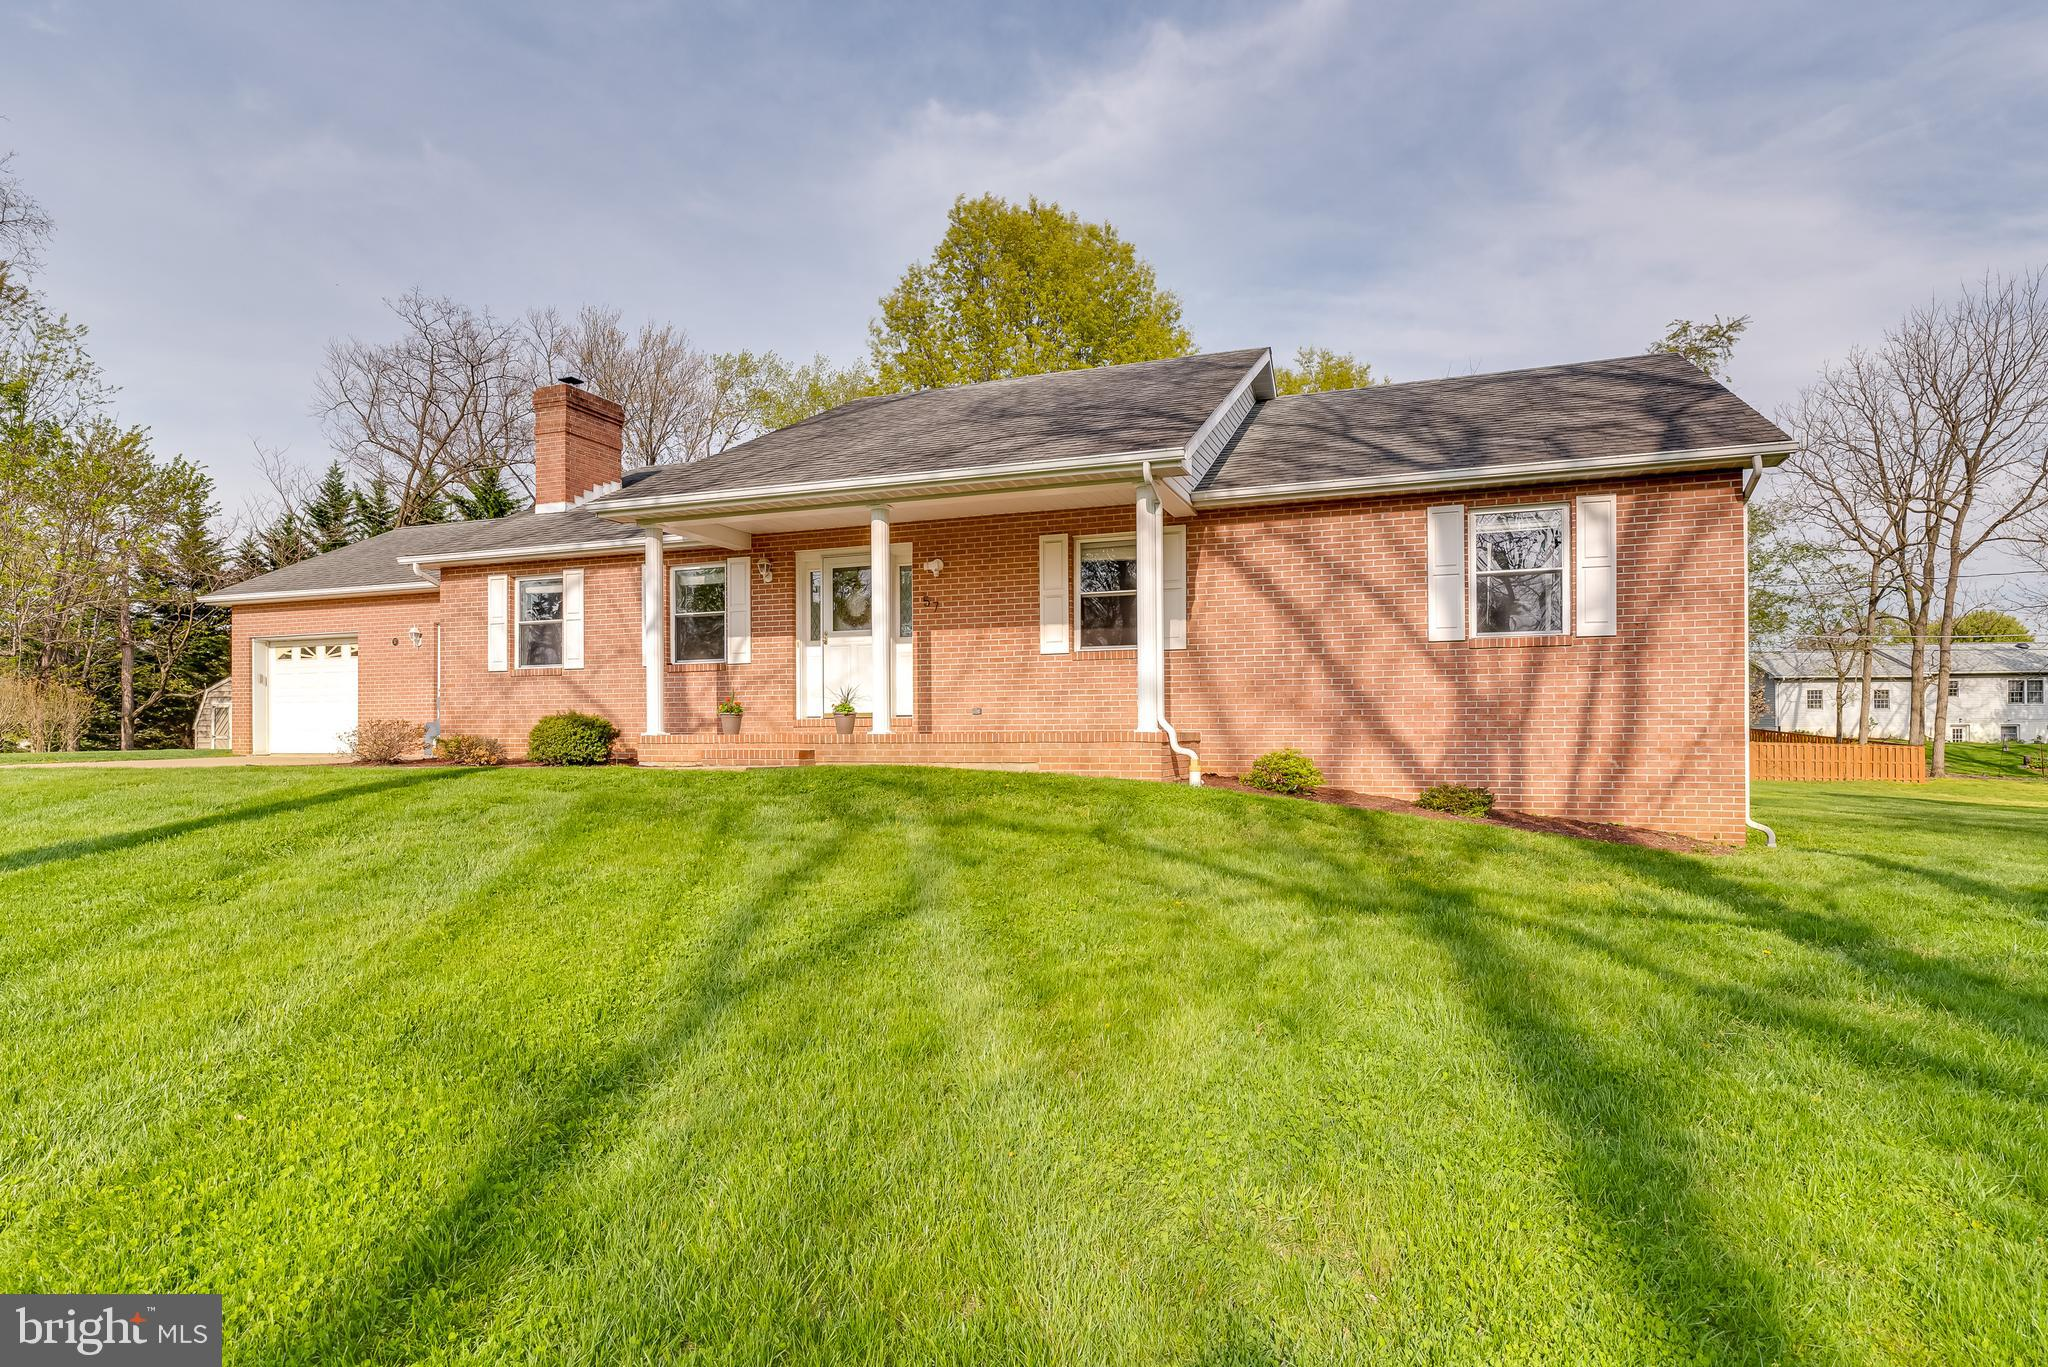 Solid brick ranch set on a quaint and quiet cul de sac in Tuscawilla Hills. This home has undergone